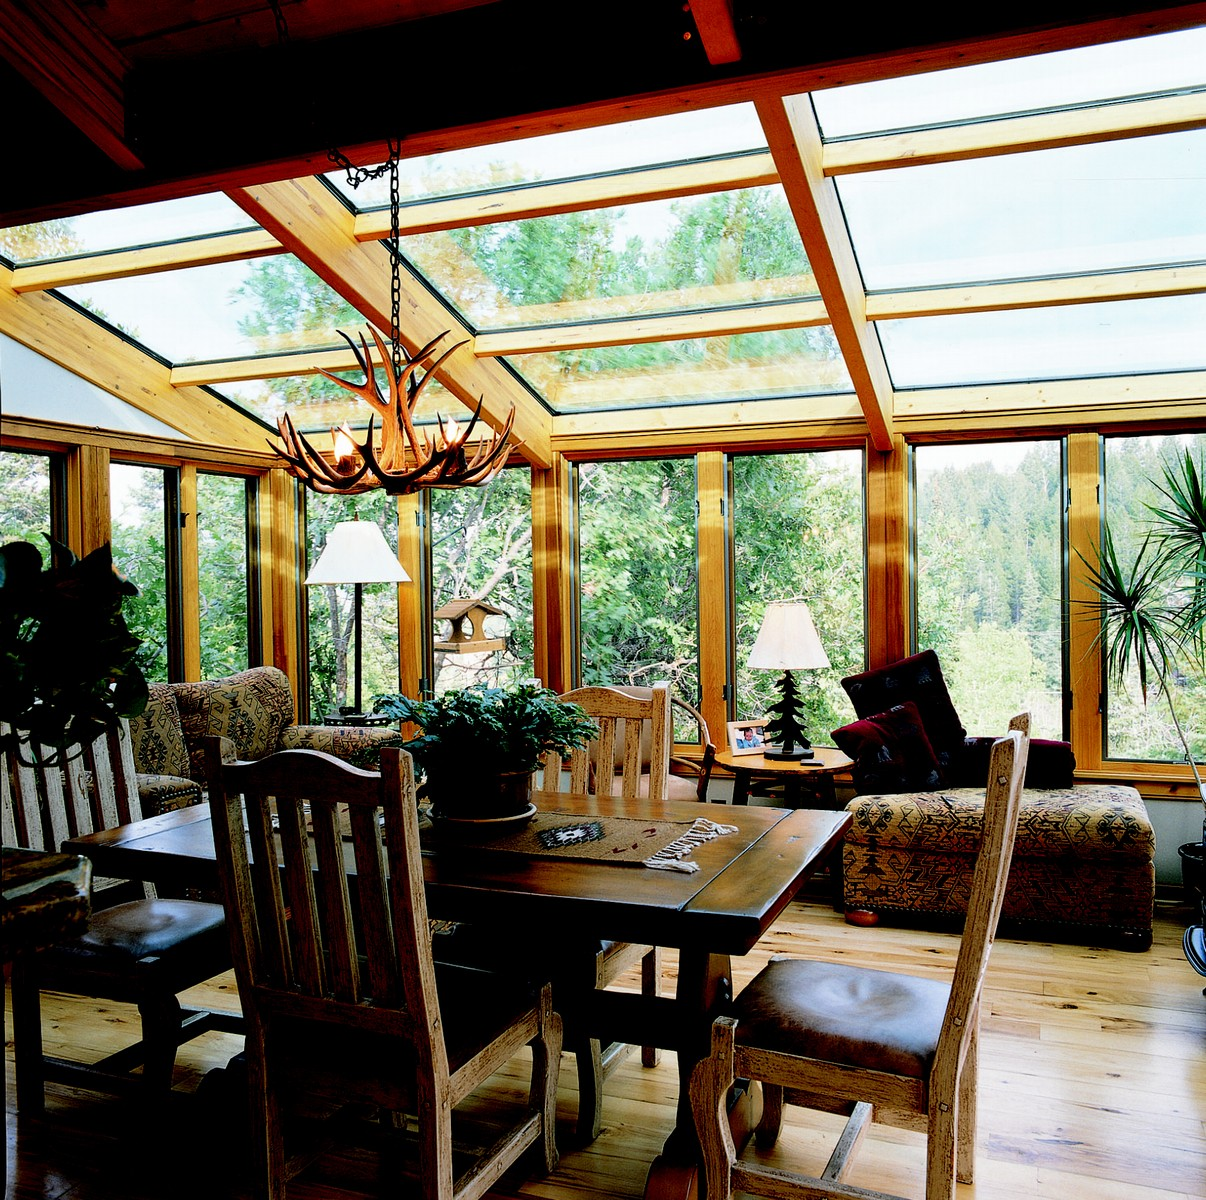 Straight Glass Roof Sun Room Or Solarium With Wood Interior